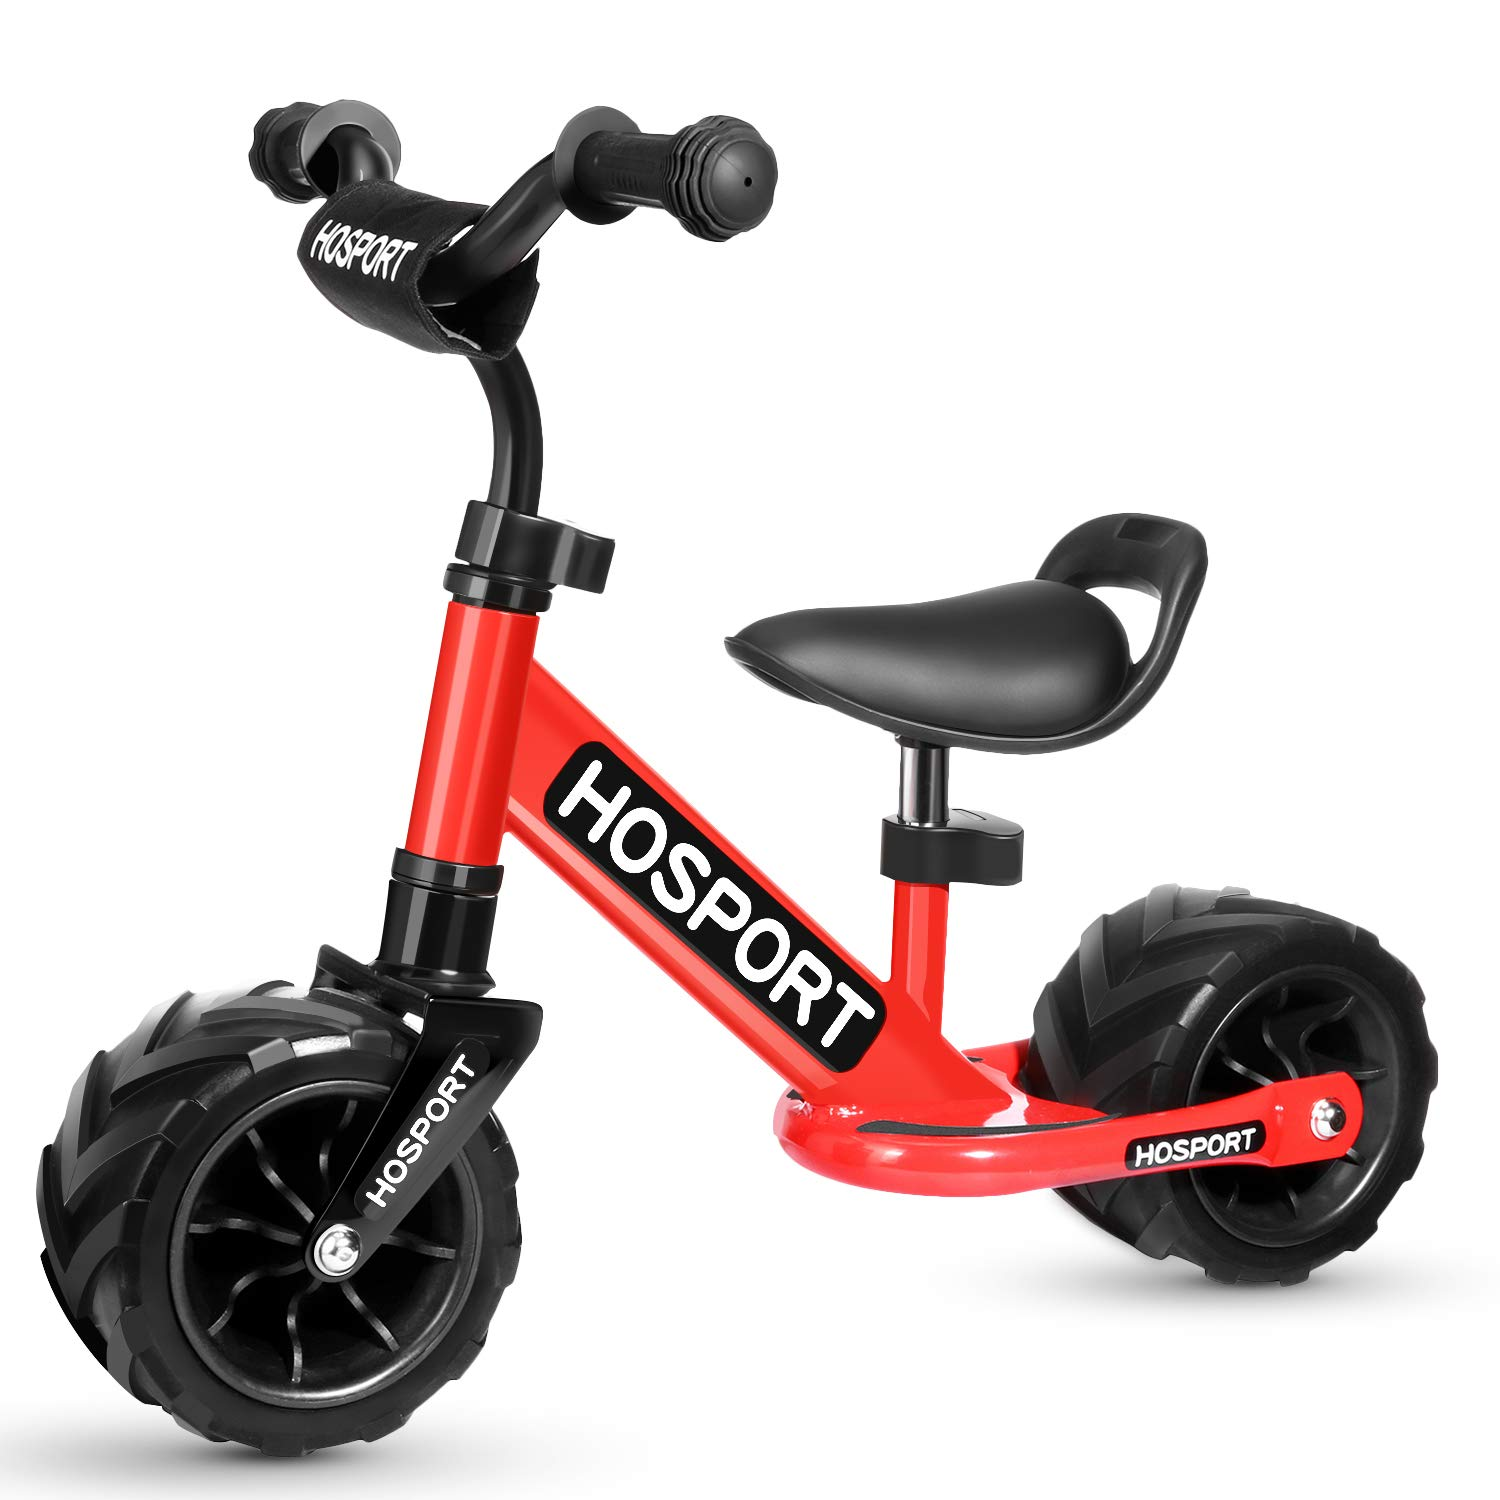 HOSPORT Balance Bike for Toddlers Training Balance Bike for Kids Ages 18 Months to 3.5 Years